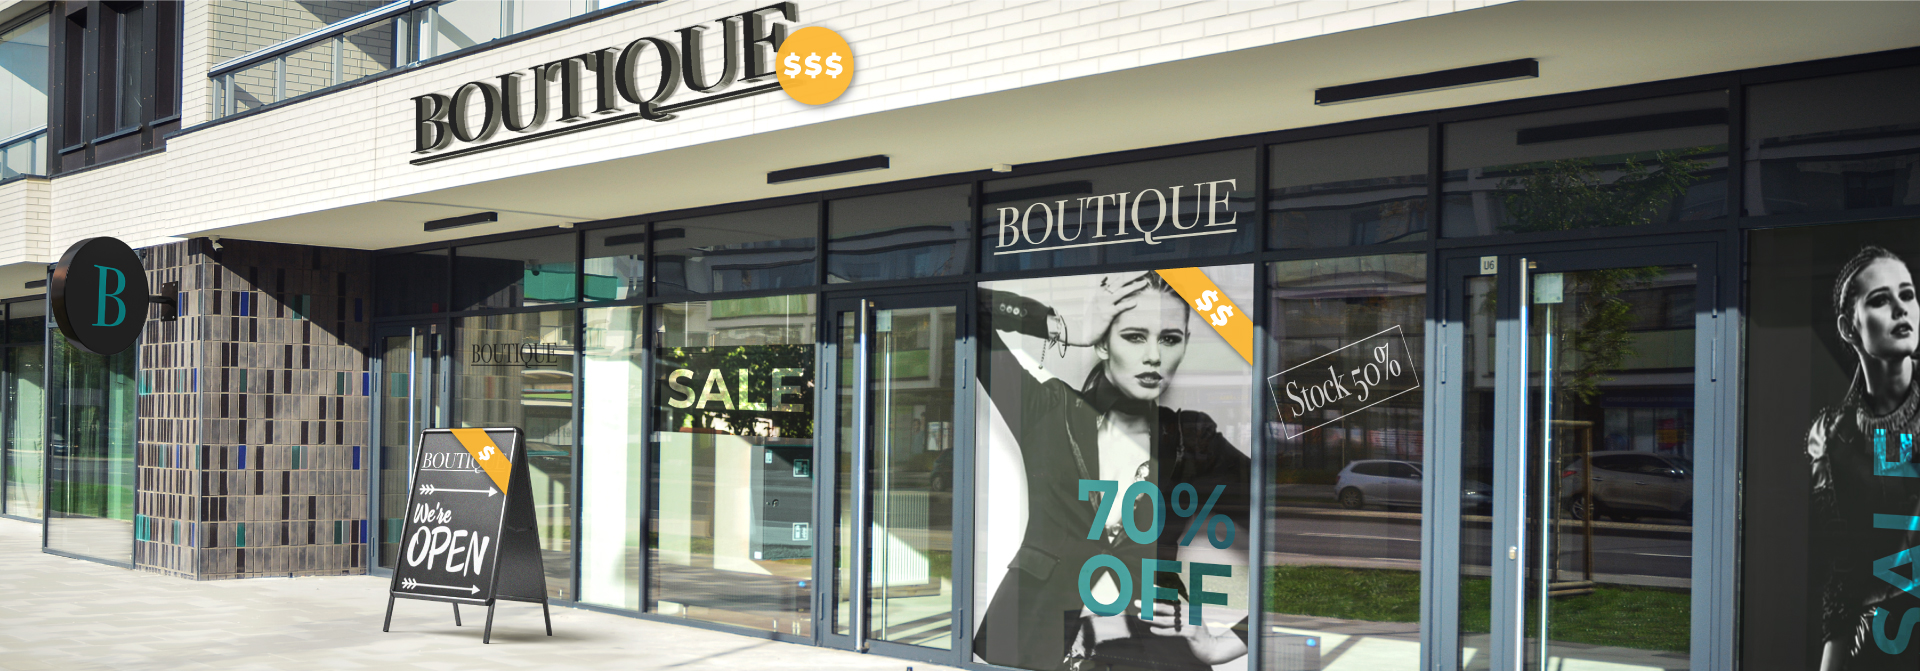 Different storefront sign costs for a boutique